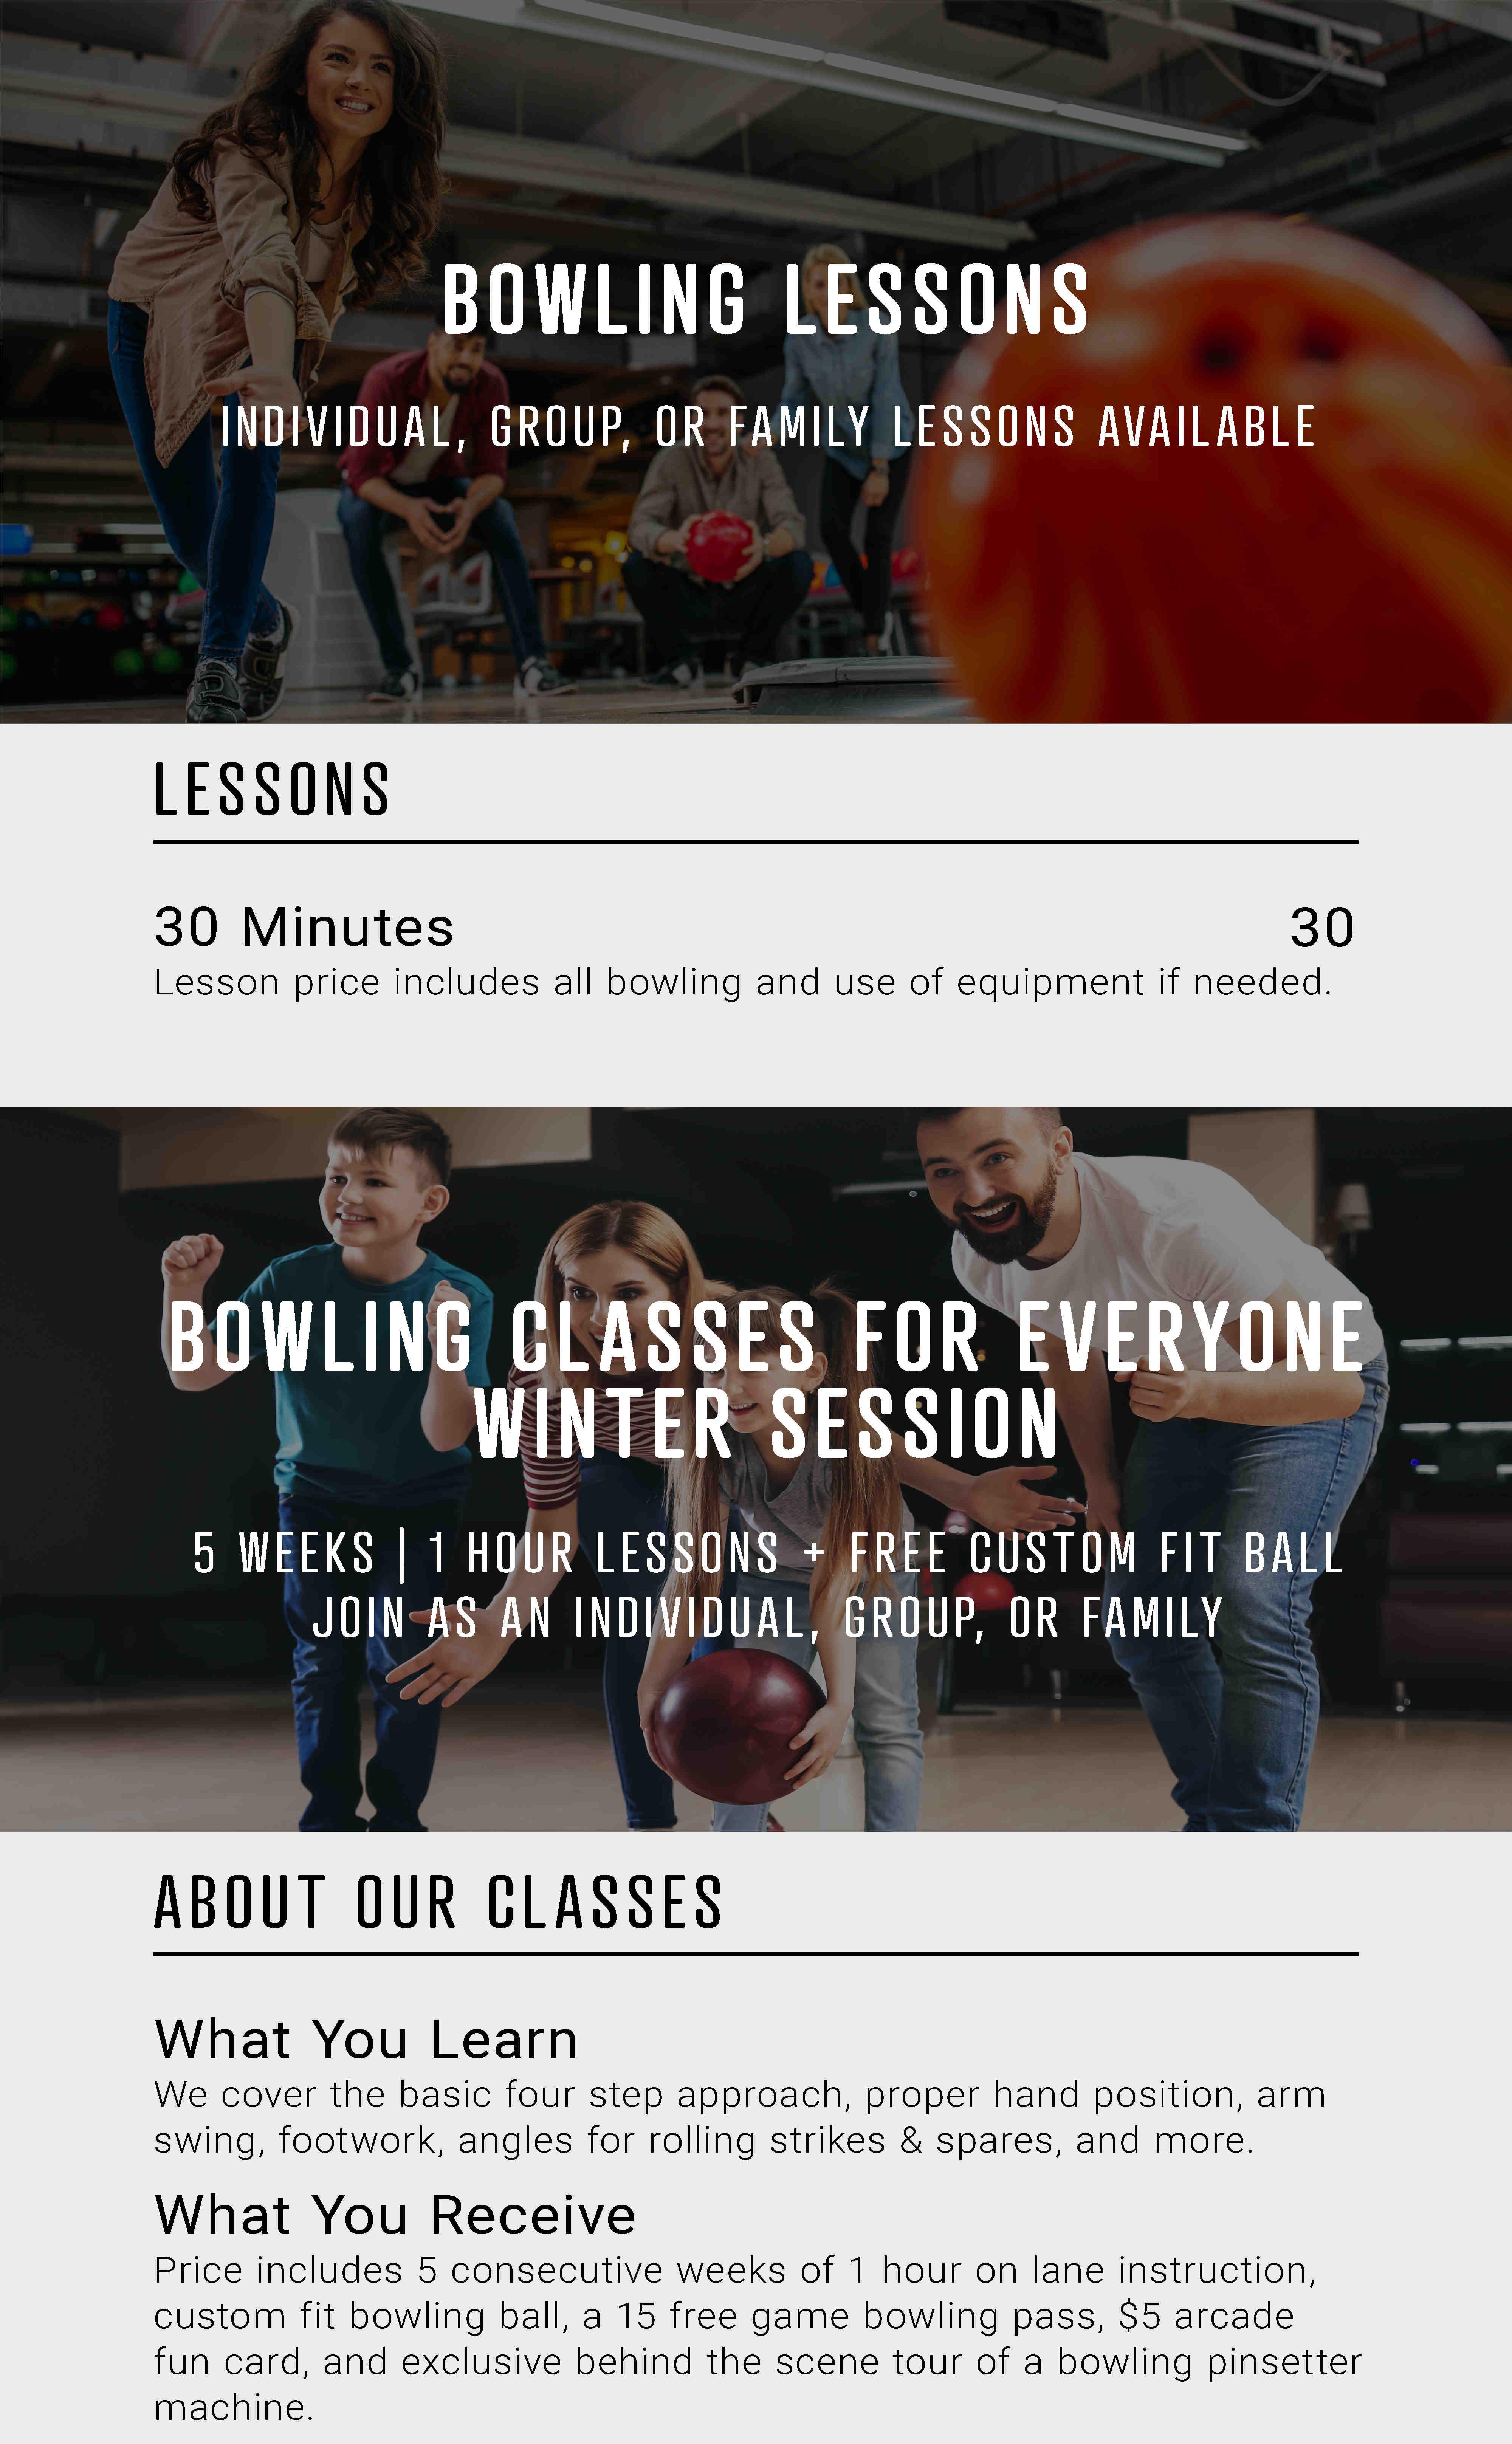 Bowling lessons and classes information